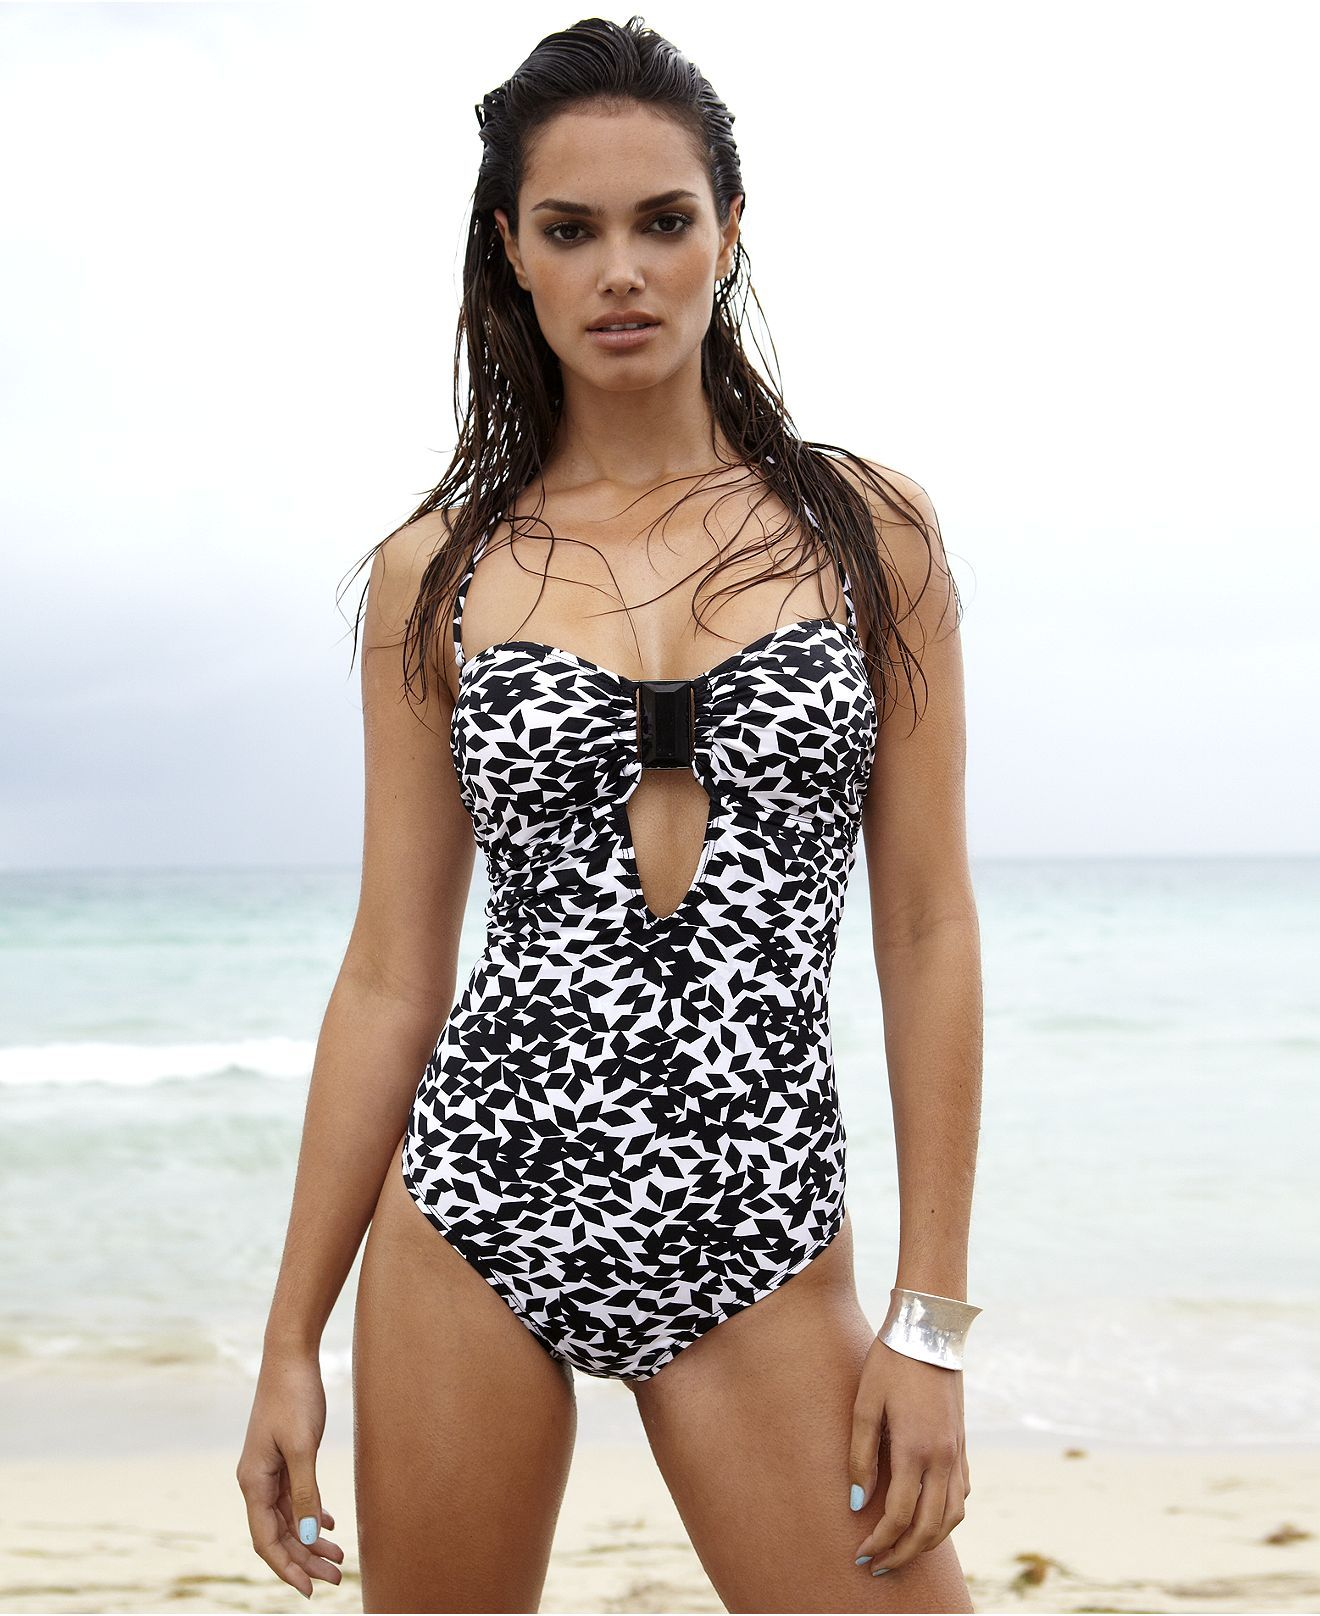 fcad4edde6d60 Kenneth Cole New York Swimsuit, Bandeau Keyhole Printed One Piece - Womens  Swim - Macy's